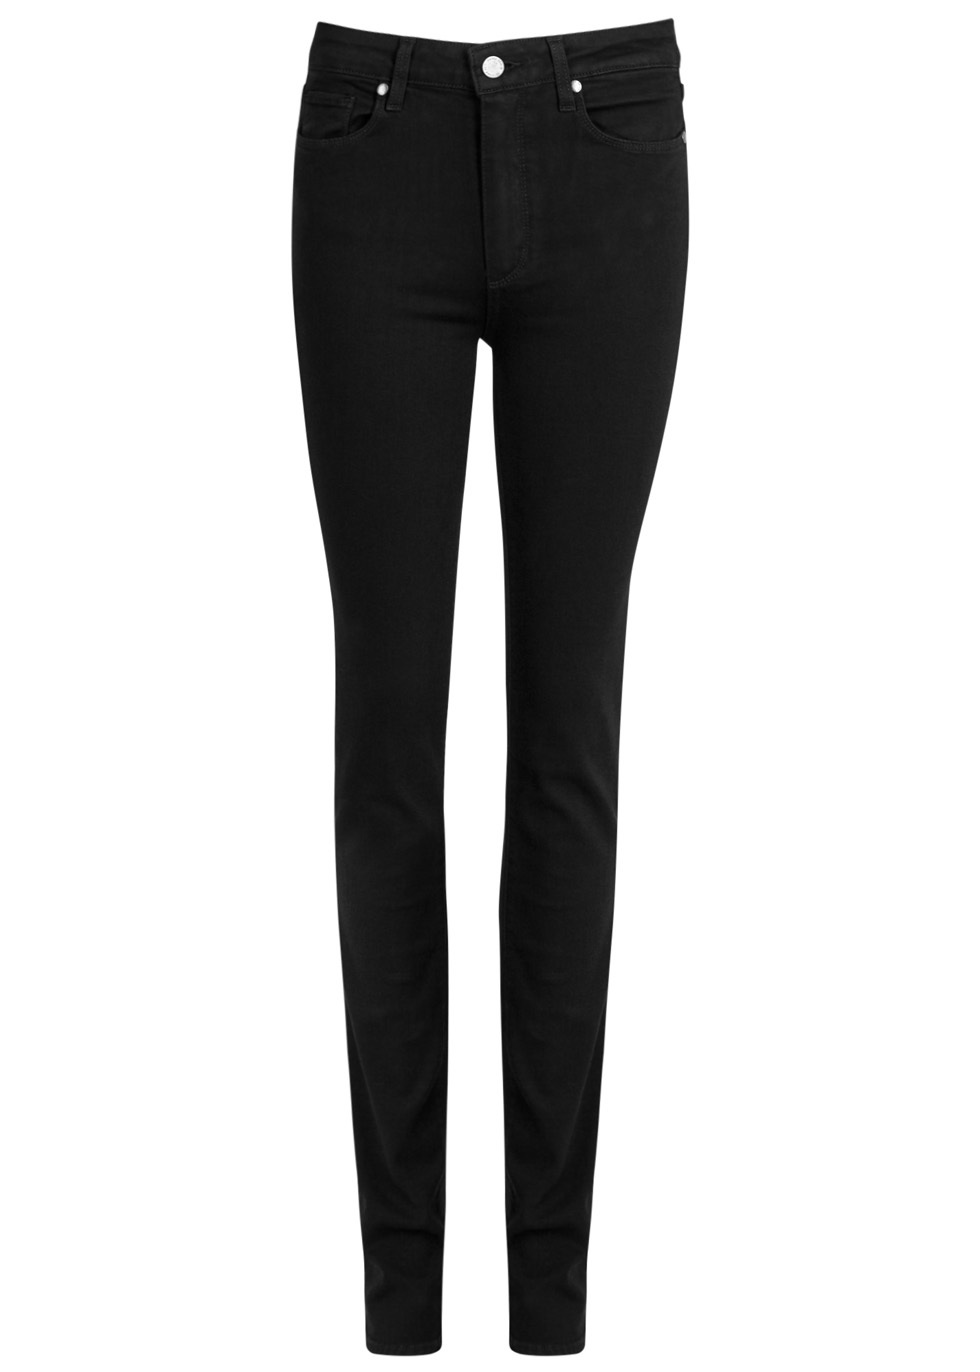 Hoxton Black Transcend Slim Leg Jeans Size W32 - style: skinny leg; length: standard; pattern: plain; pocket detail: traditional 5 pocket; waist: mid/regular rise; predominant colour: black; occasions: casual, evening, creative work; fibres: cotton - stretch; texture group: denim; pattern type: fabric; wardrobe: basic; season: s/s 2017